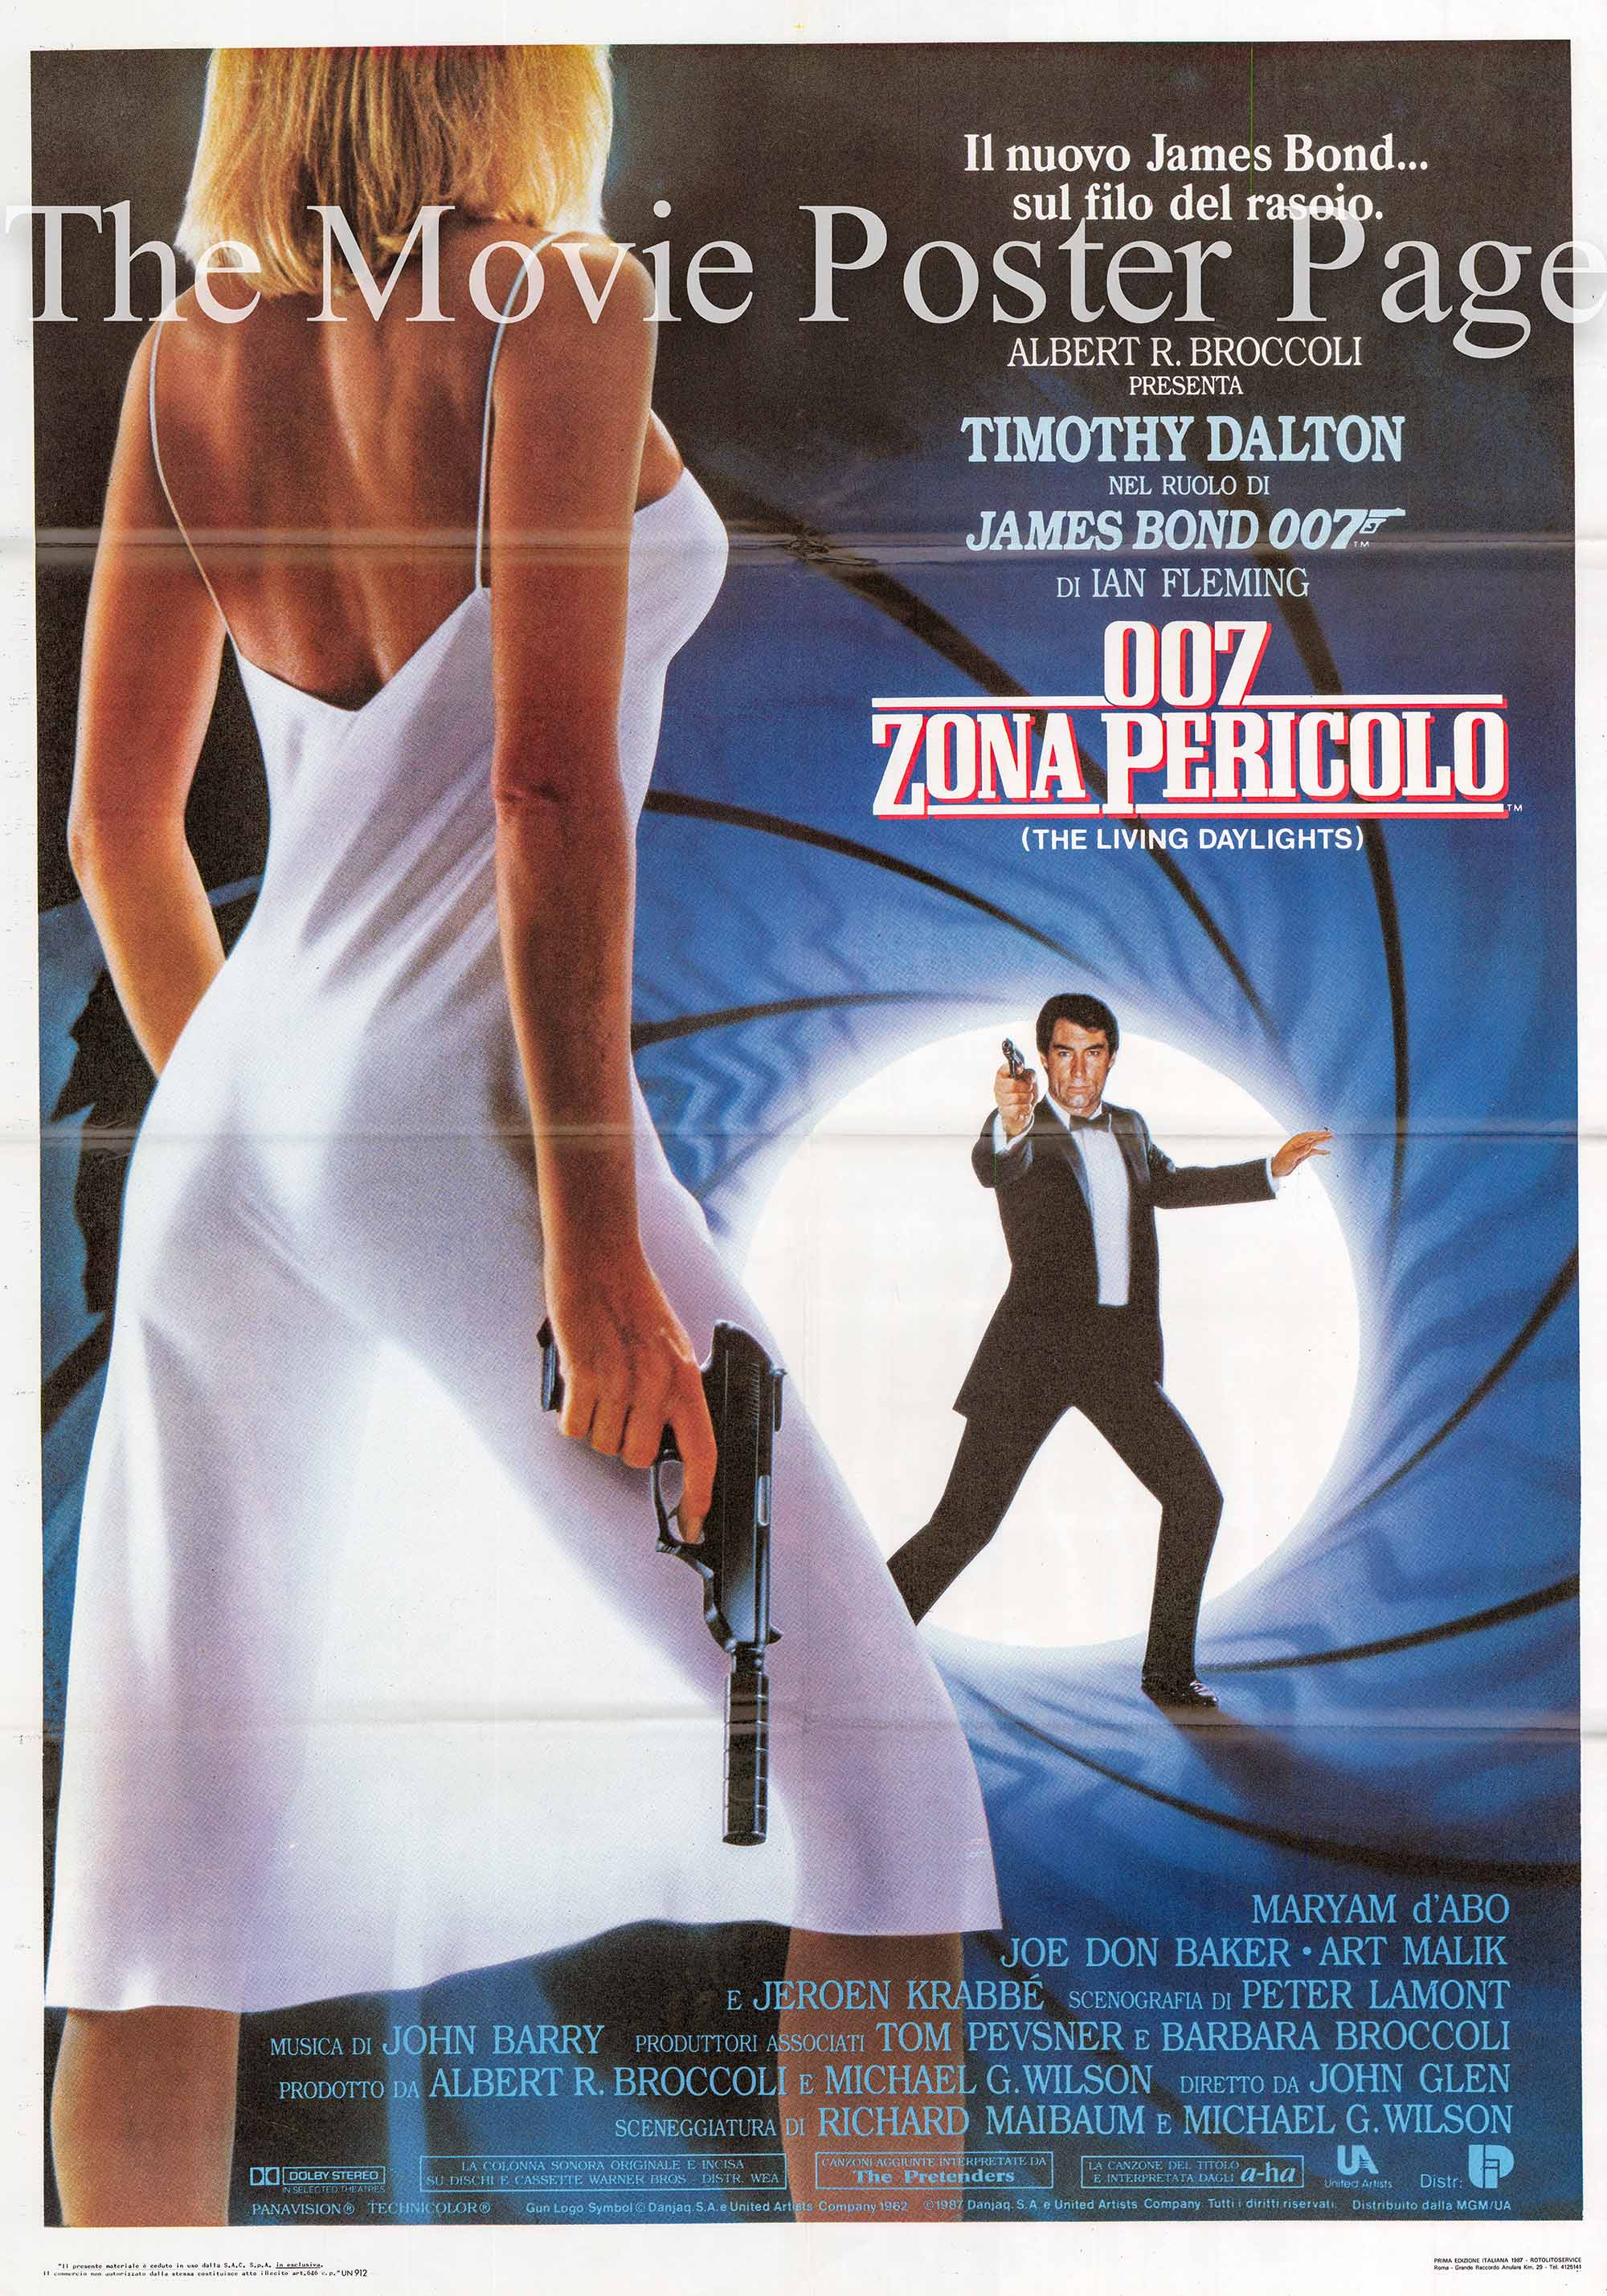 Pictured is an Italian two-sheet promotional poster for the 1987 John Glen film The Living Daylights starring Timothy Dalton as James Bond.